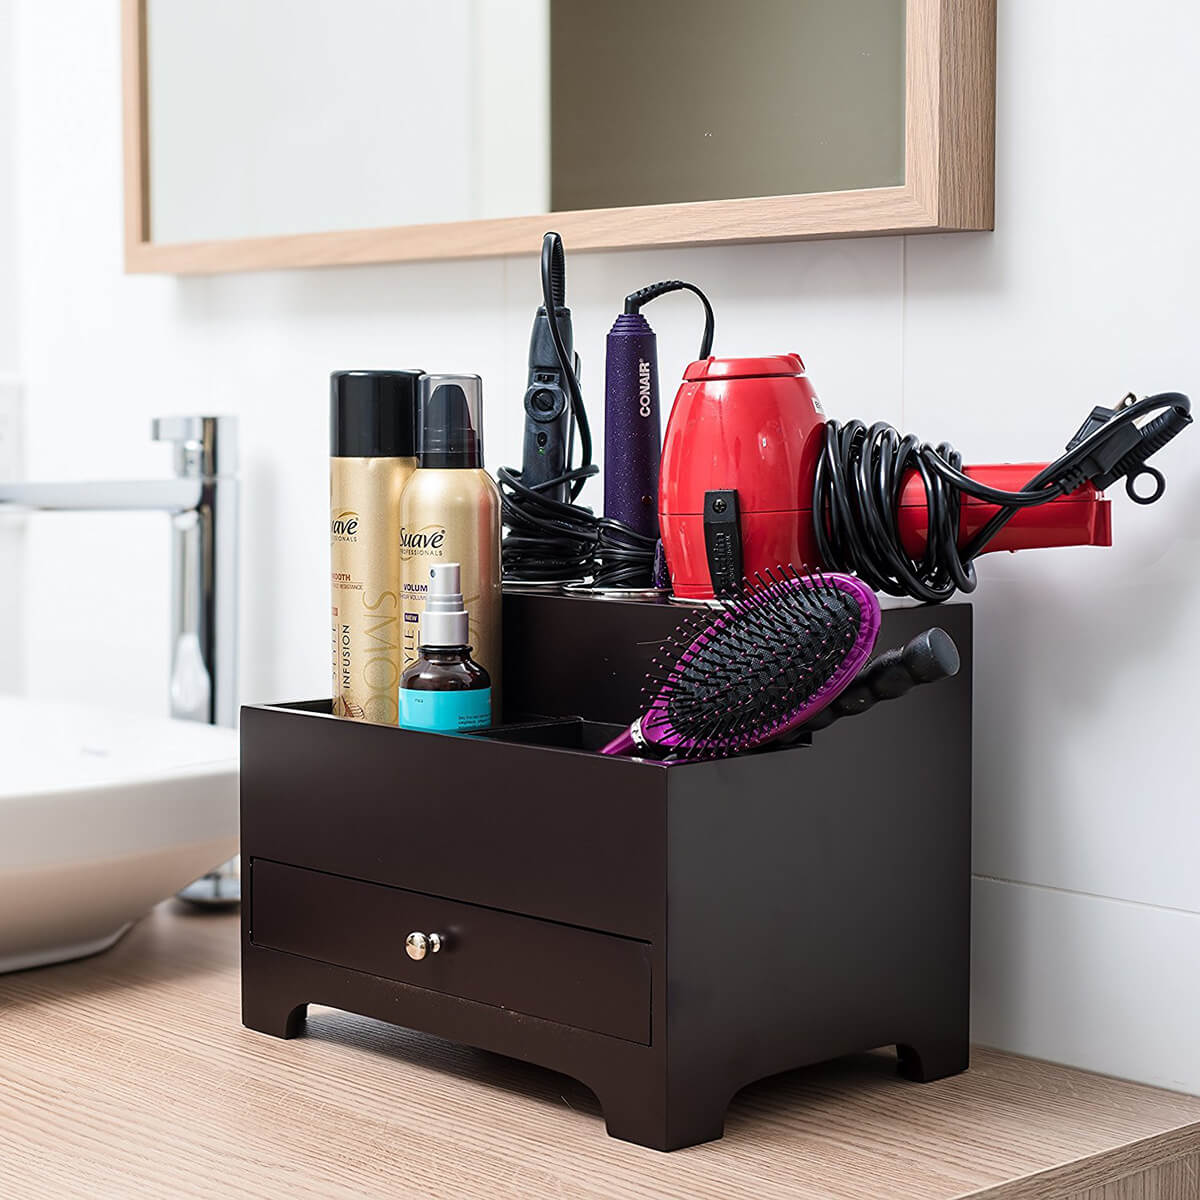 Two-tiered Hair Styling Tool Best Bathroom Organizer